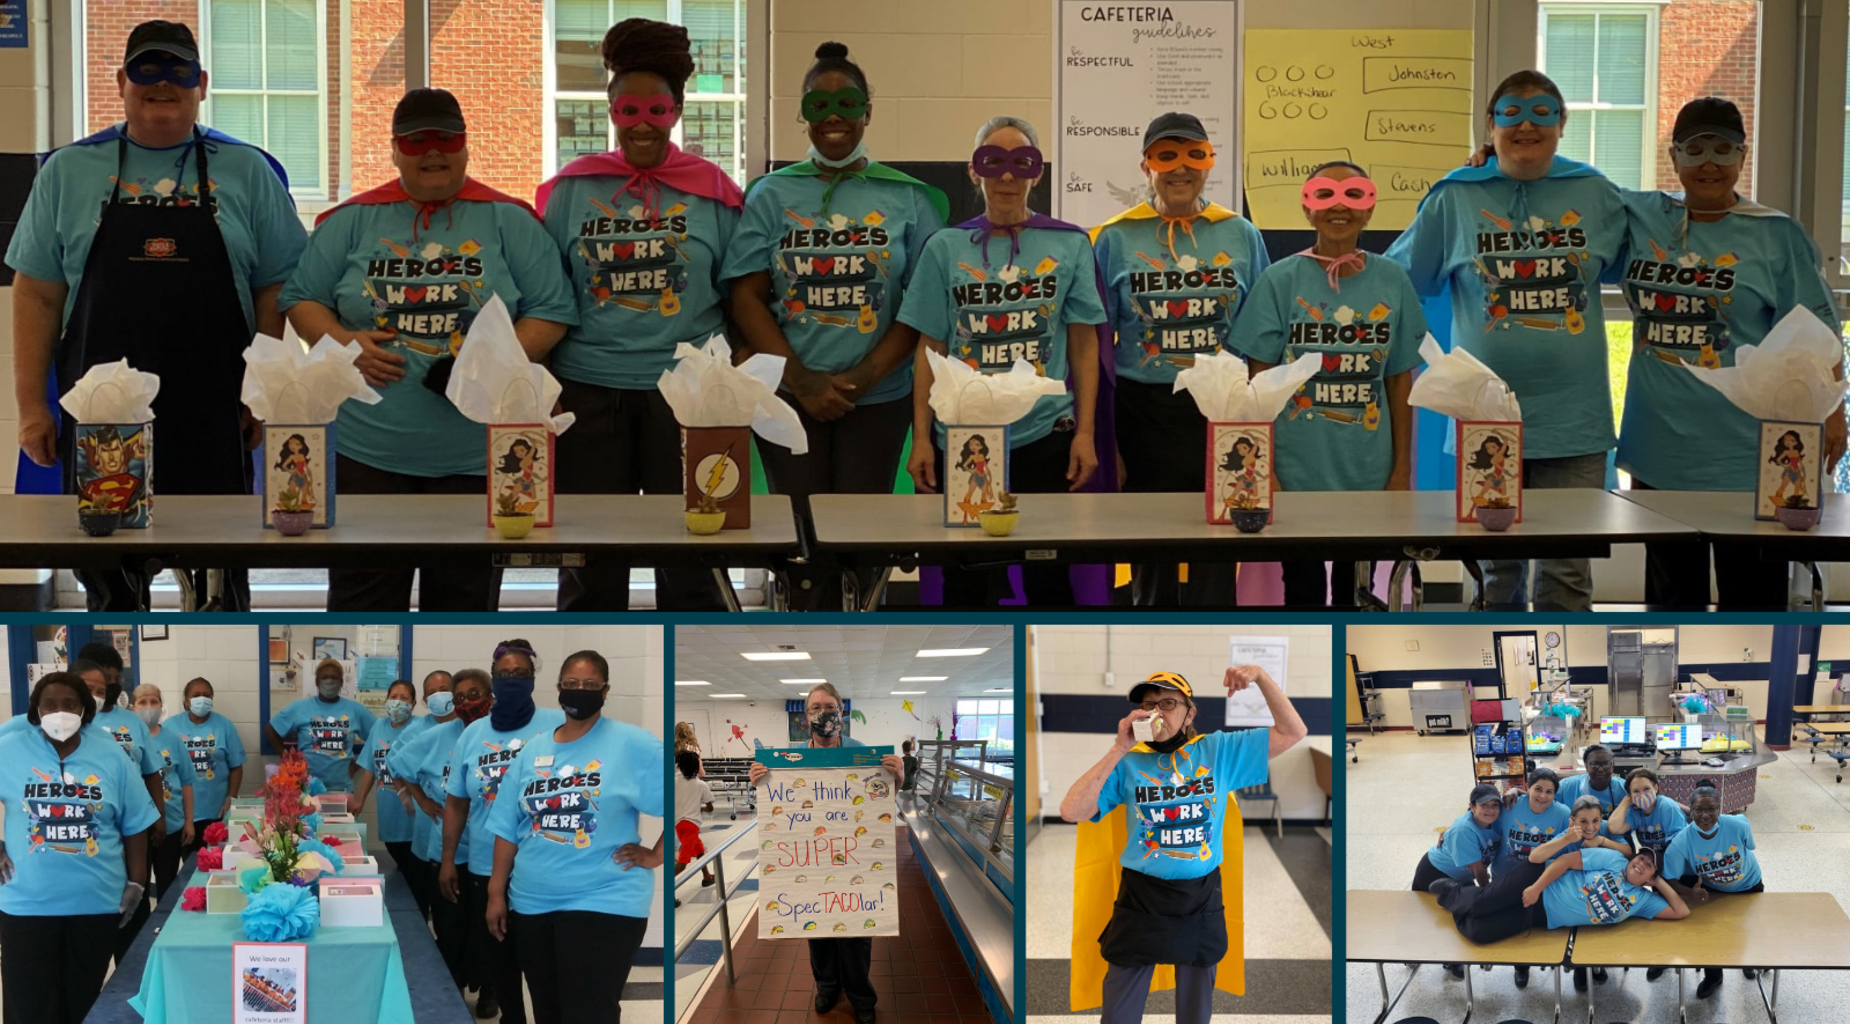 School Lunch Heroes Collage